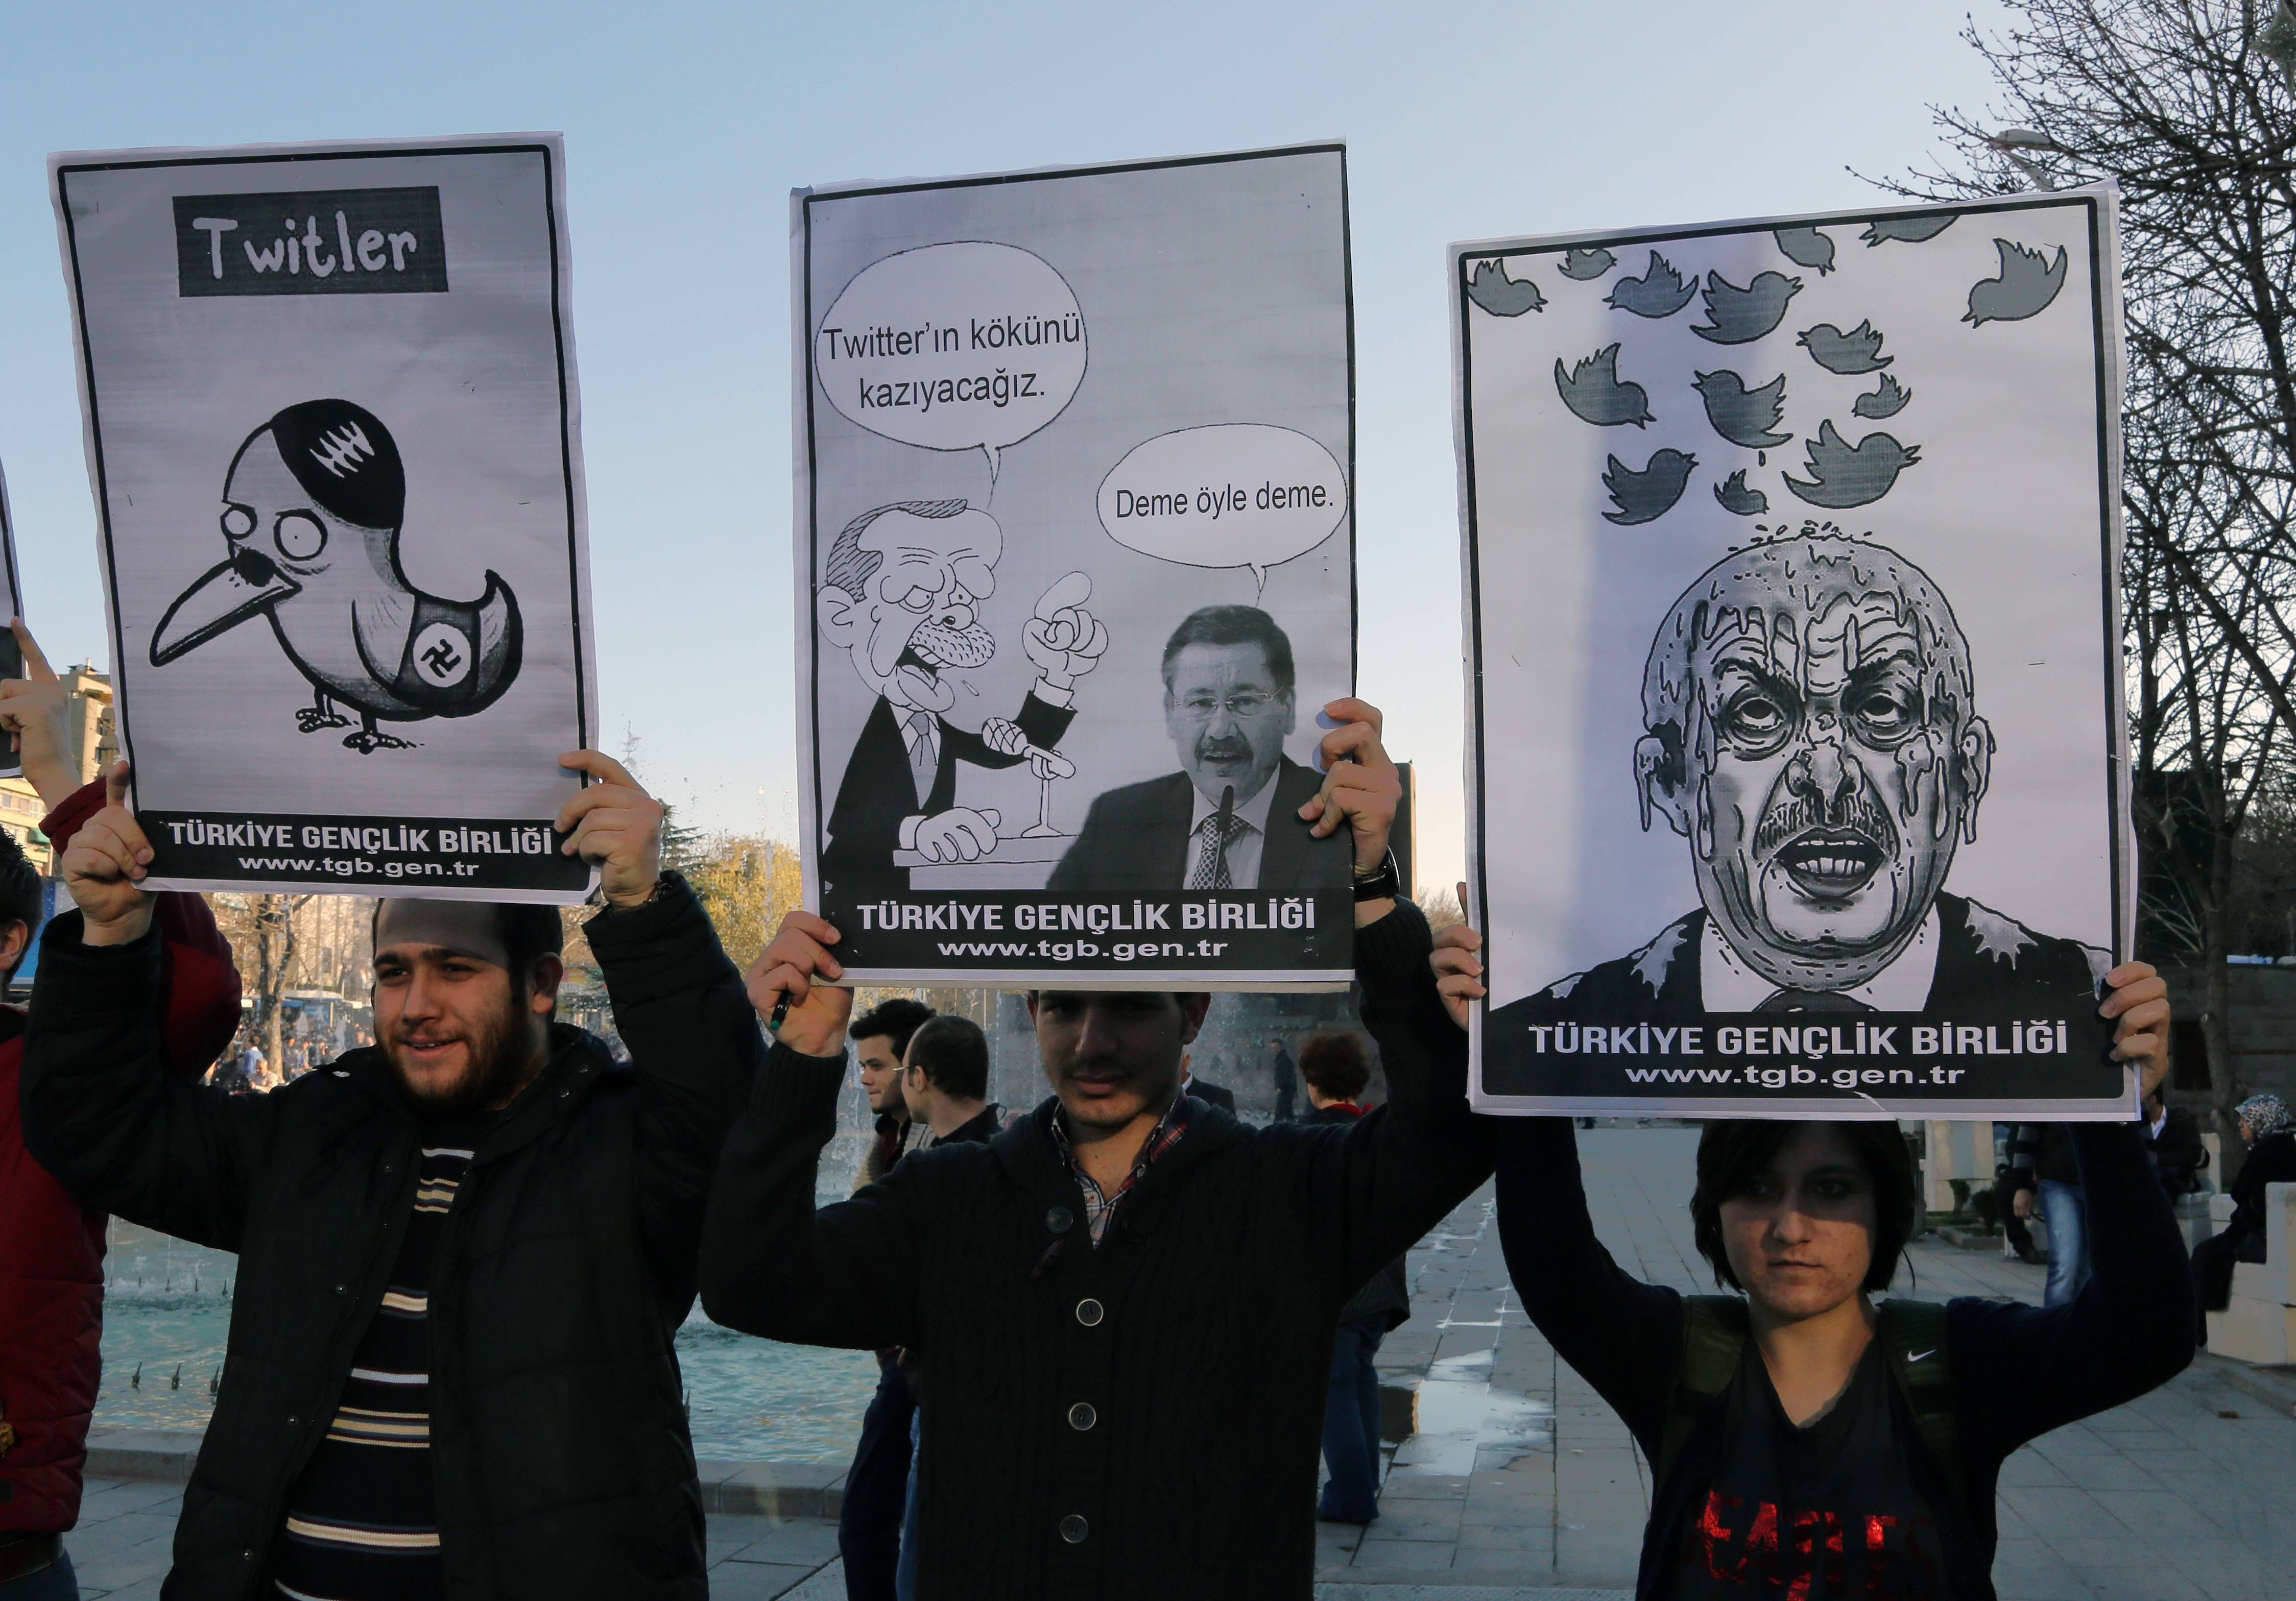 Members of the Turkish Youth Union hold cartoons Friday depicting Turkey's Prime Minister Recep Tayyip Erdogan during a protest against a ban on Twitter, in Ankara, Turkey.